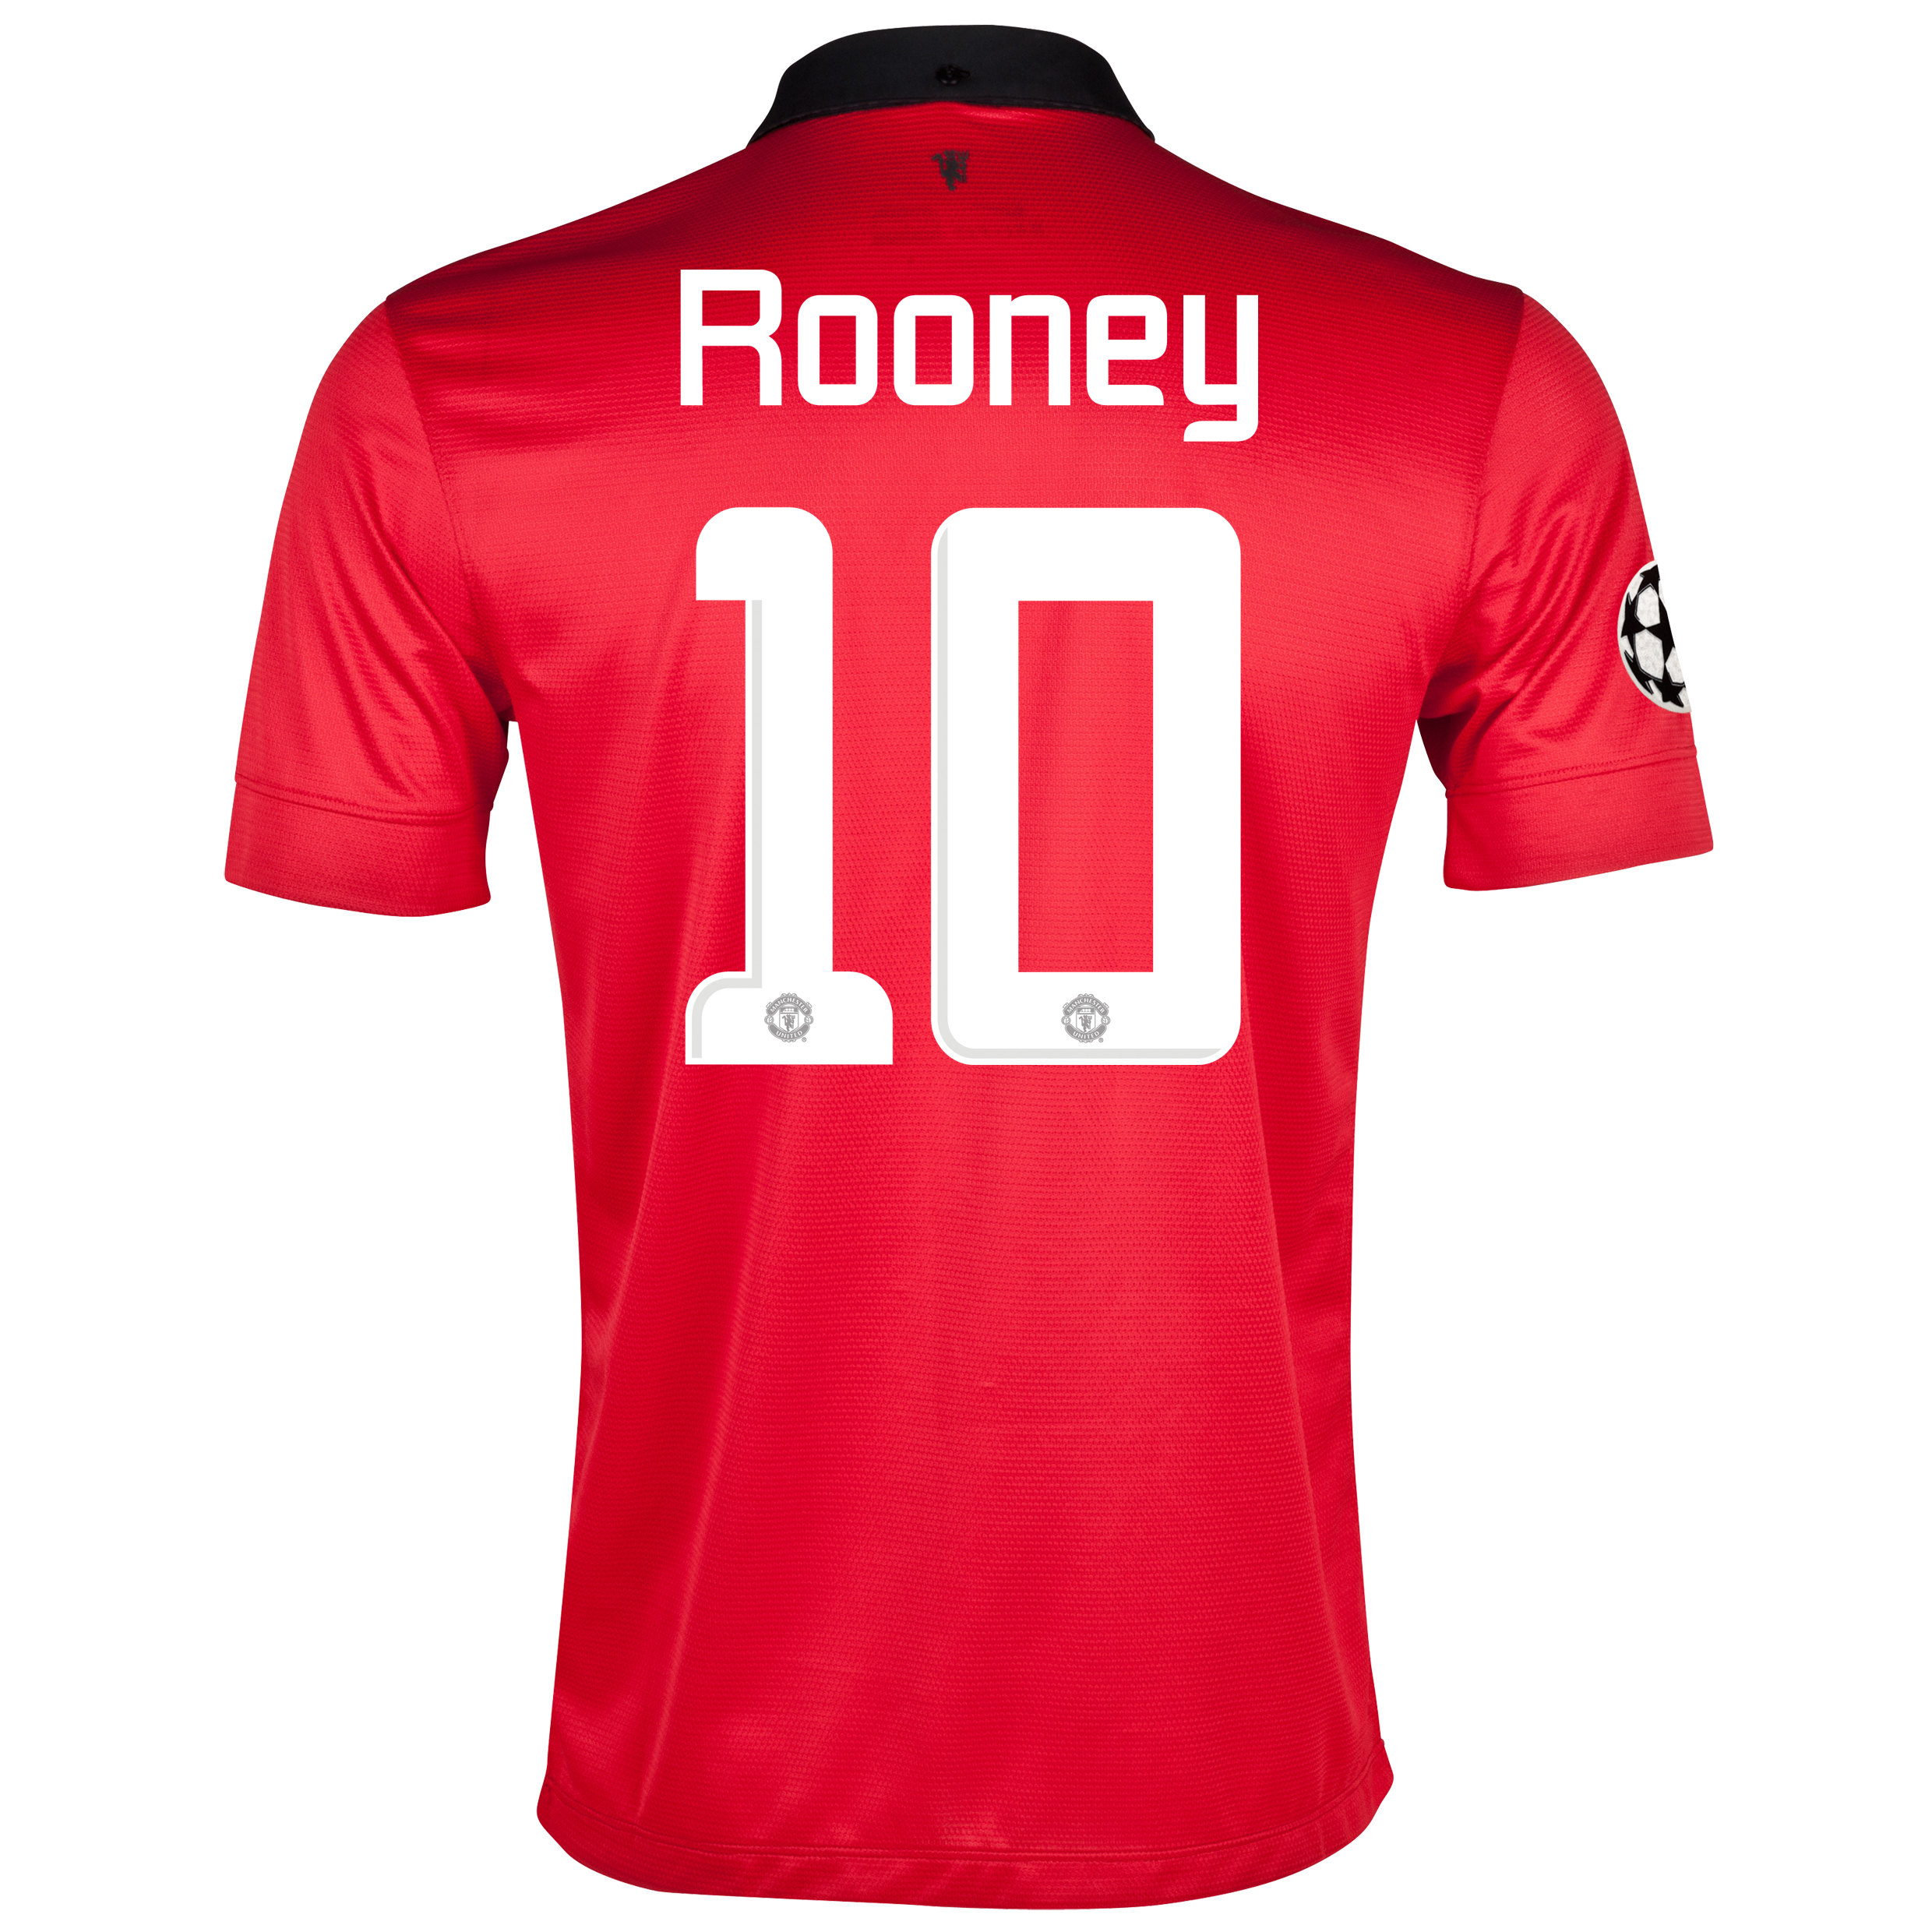 Manchester United UEFA Champions League Home Shirt 2013/14 with Rooney 10 printing